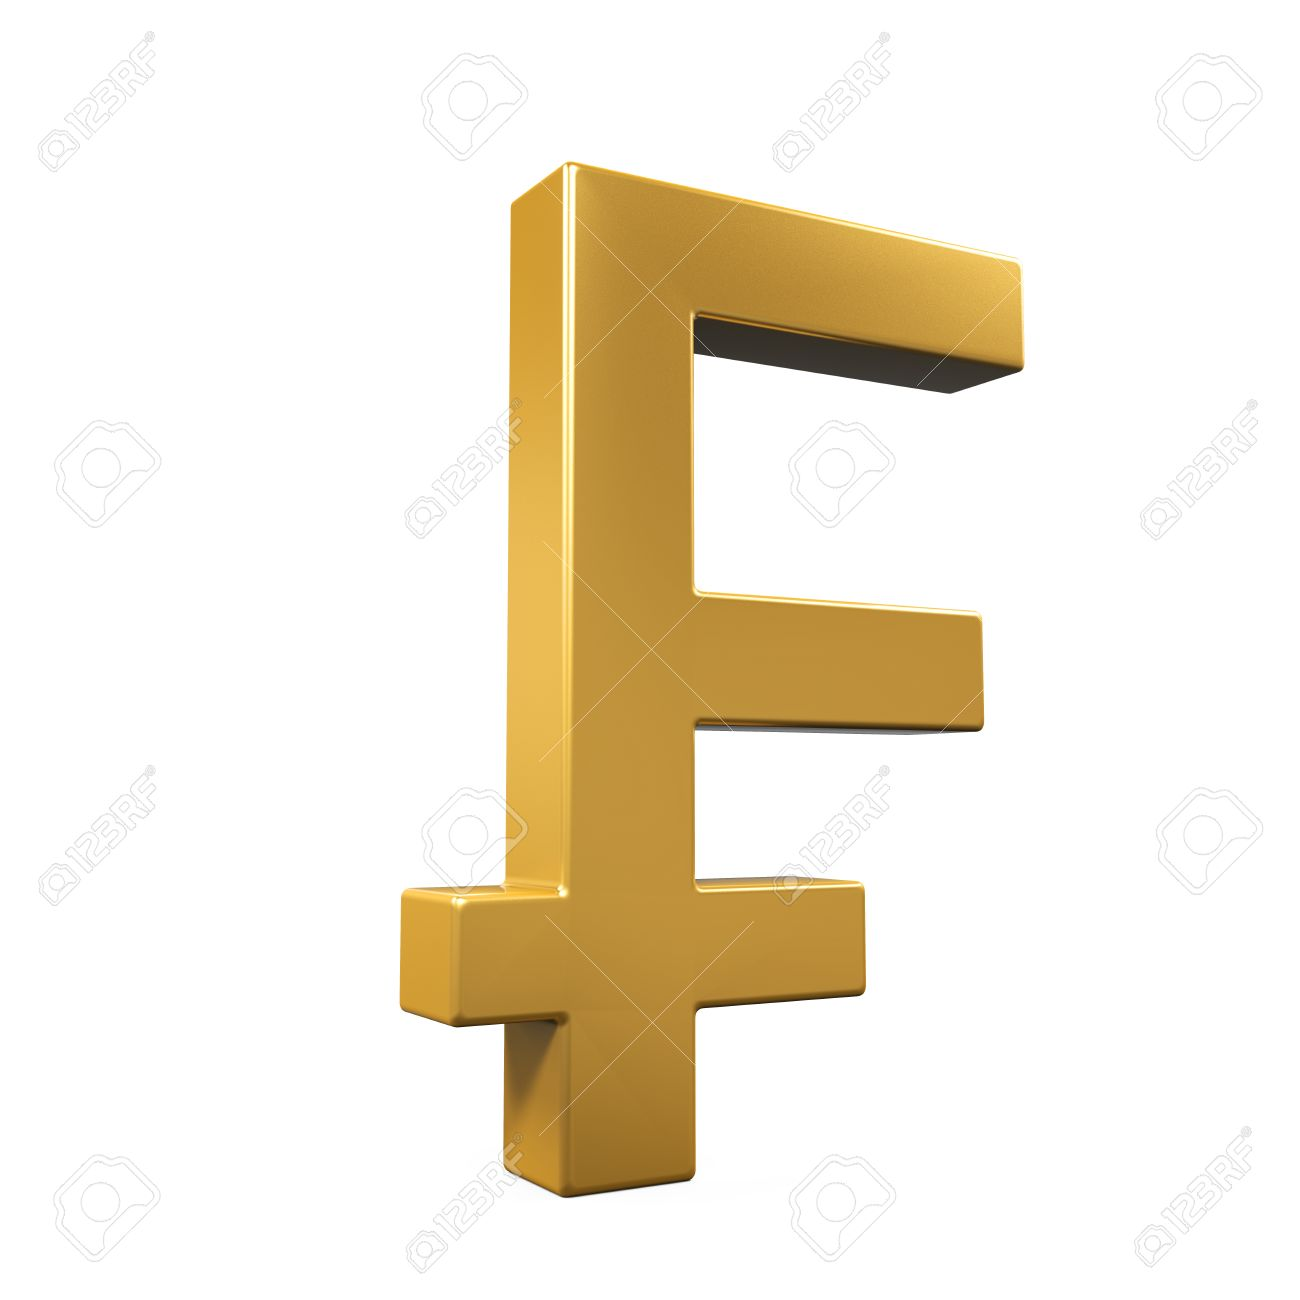 Swiss franc symbol stock photo picture and royalty free image swiss franc symbol buycottarizona Image collections